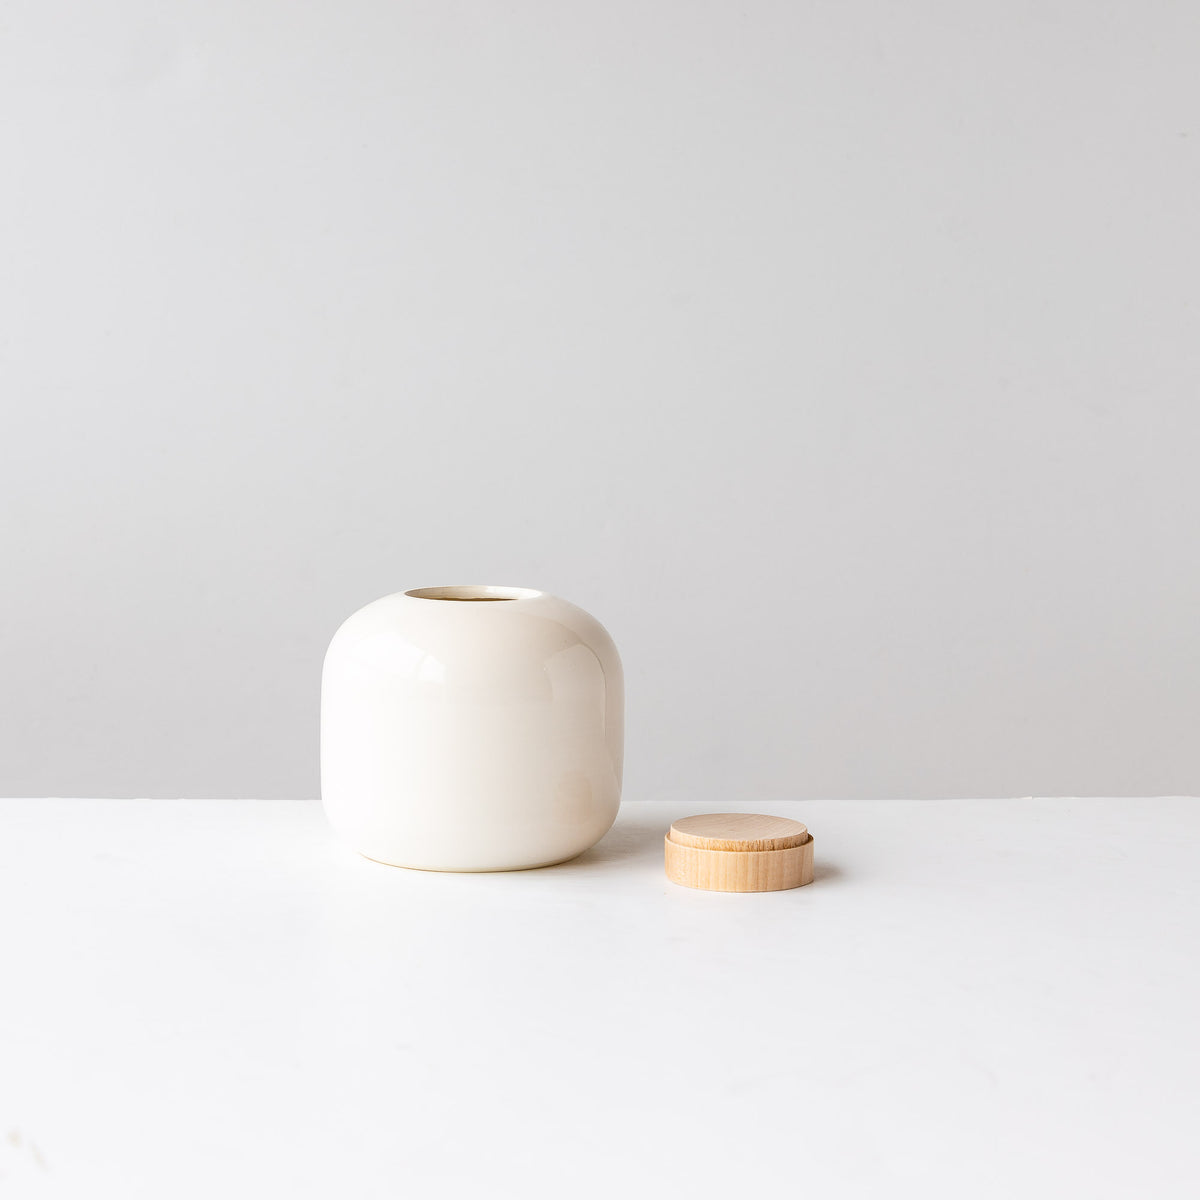 Small White Pot with Wooden Lid - Sold by Chic & Basta